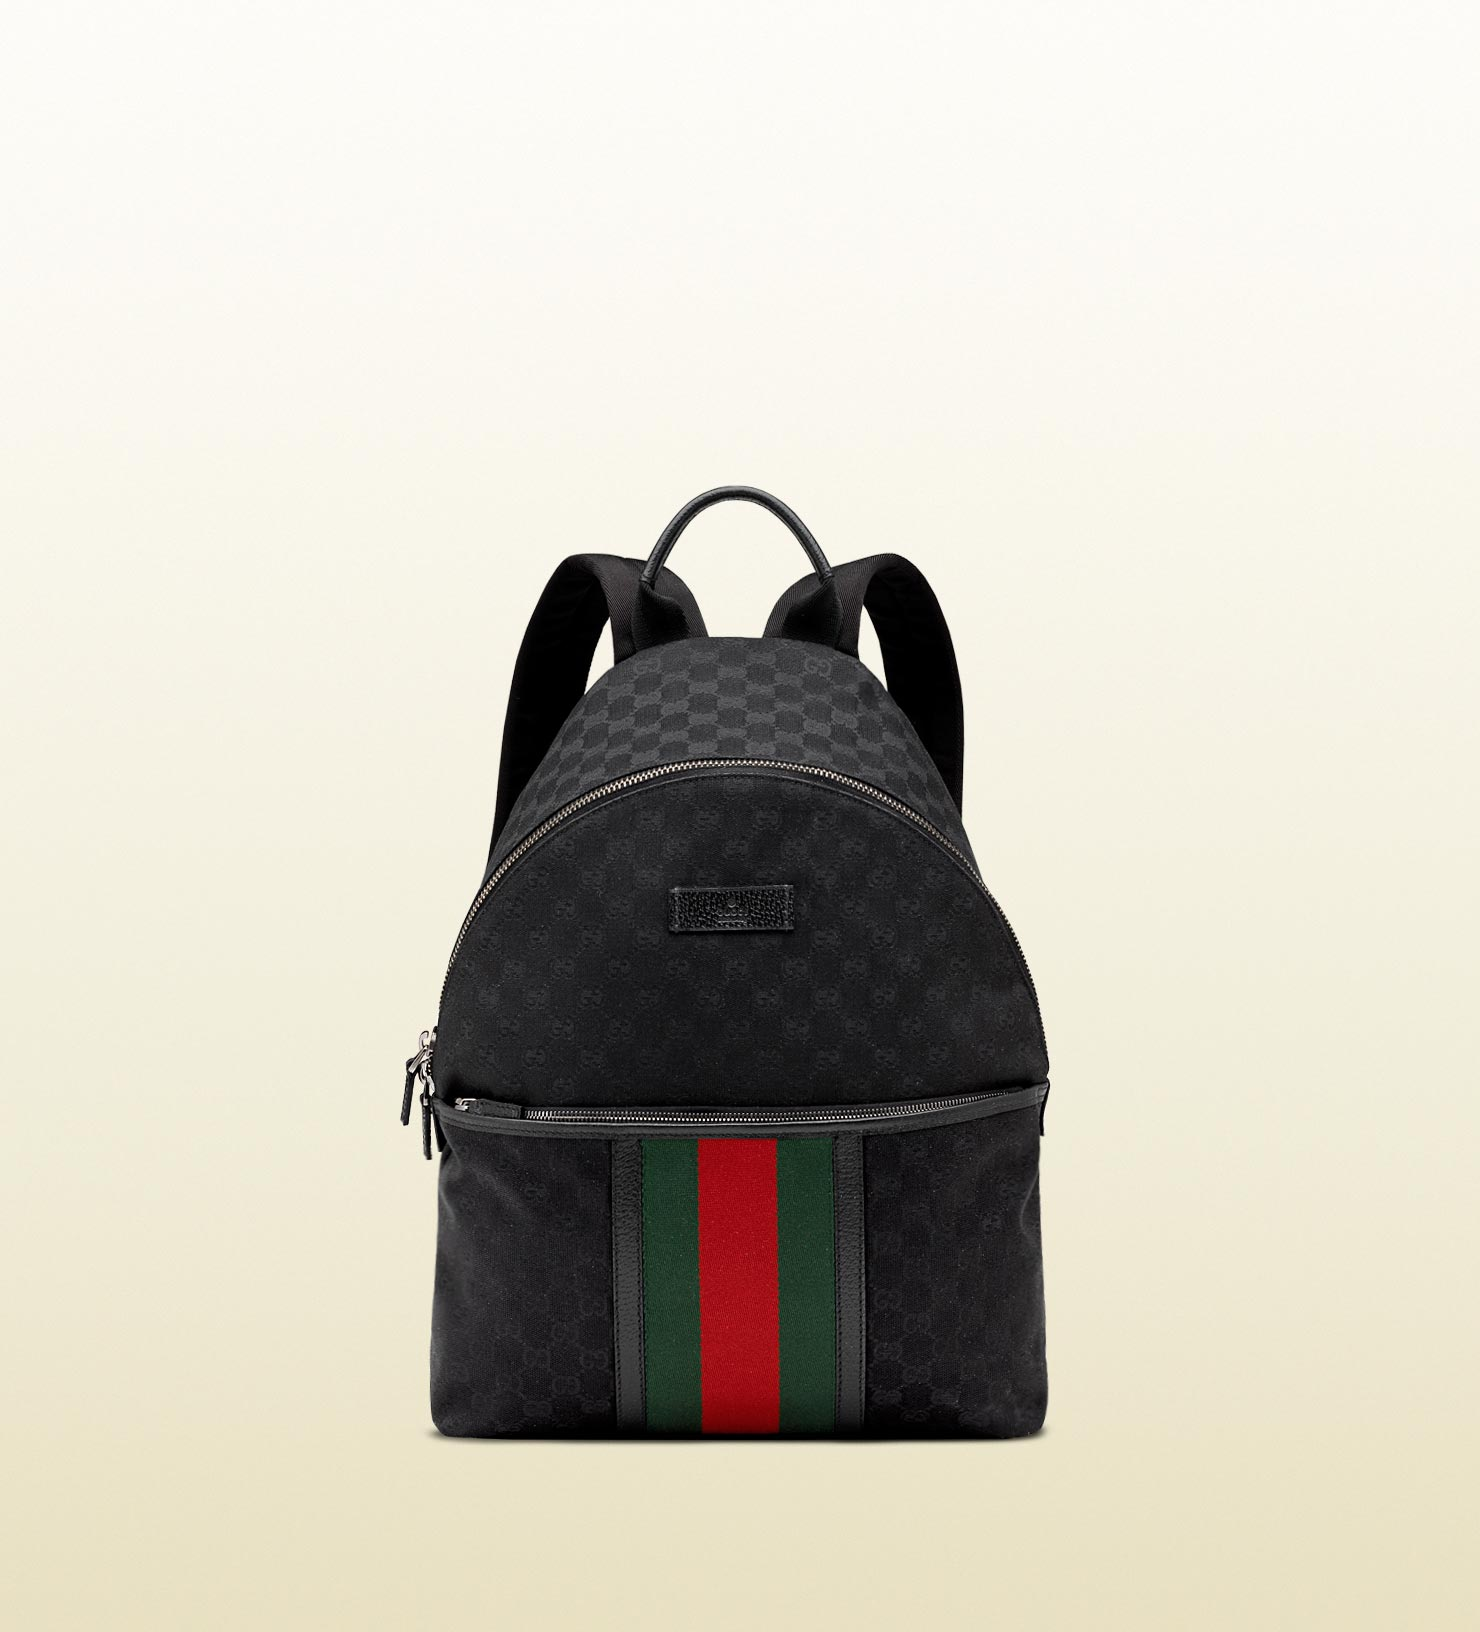 Black Green Red Gucci Backpack, Fenix Toulouse Handball